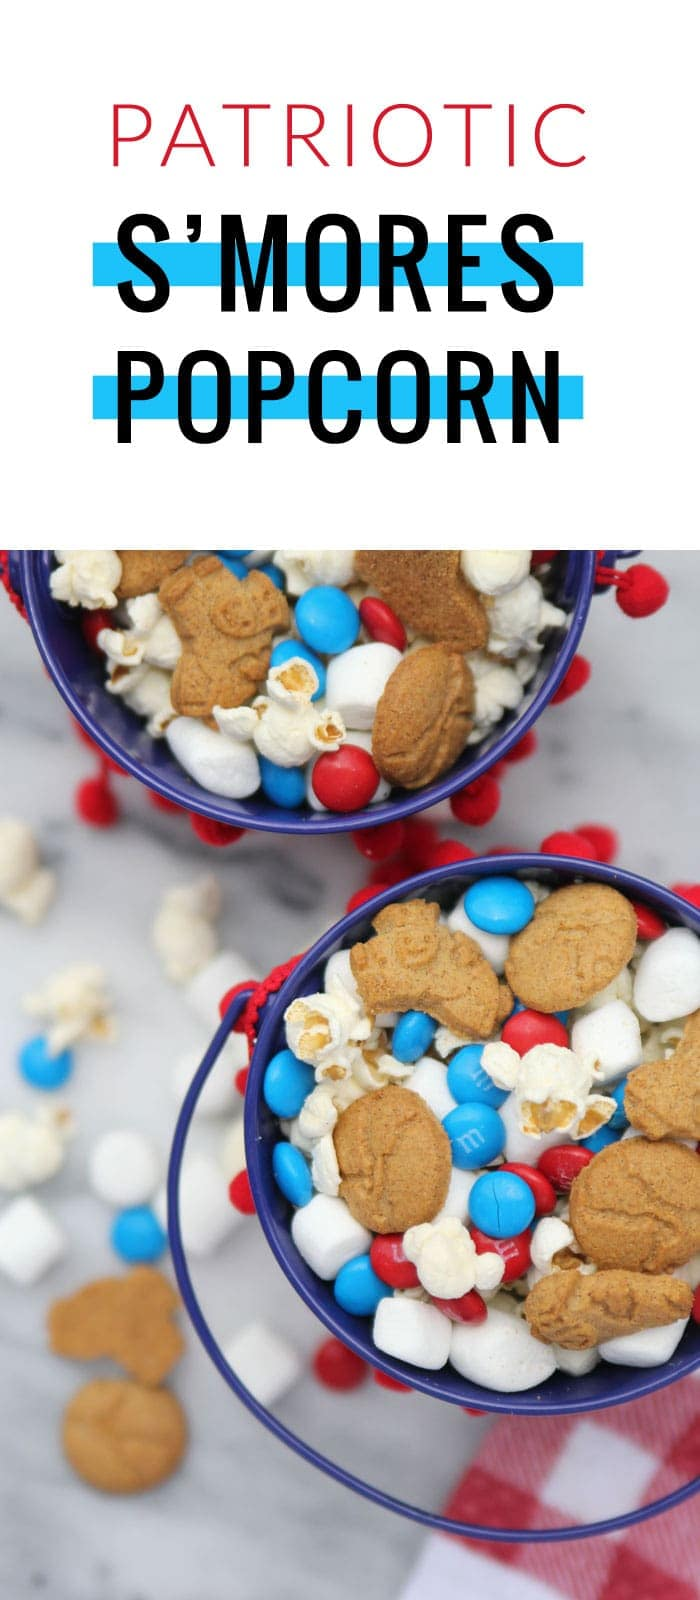 This patriotic smores popcon is sure to please the crowd for the 4th of July, Memorial Day, or any other patriotic holiday!